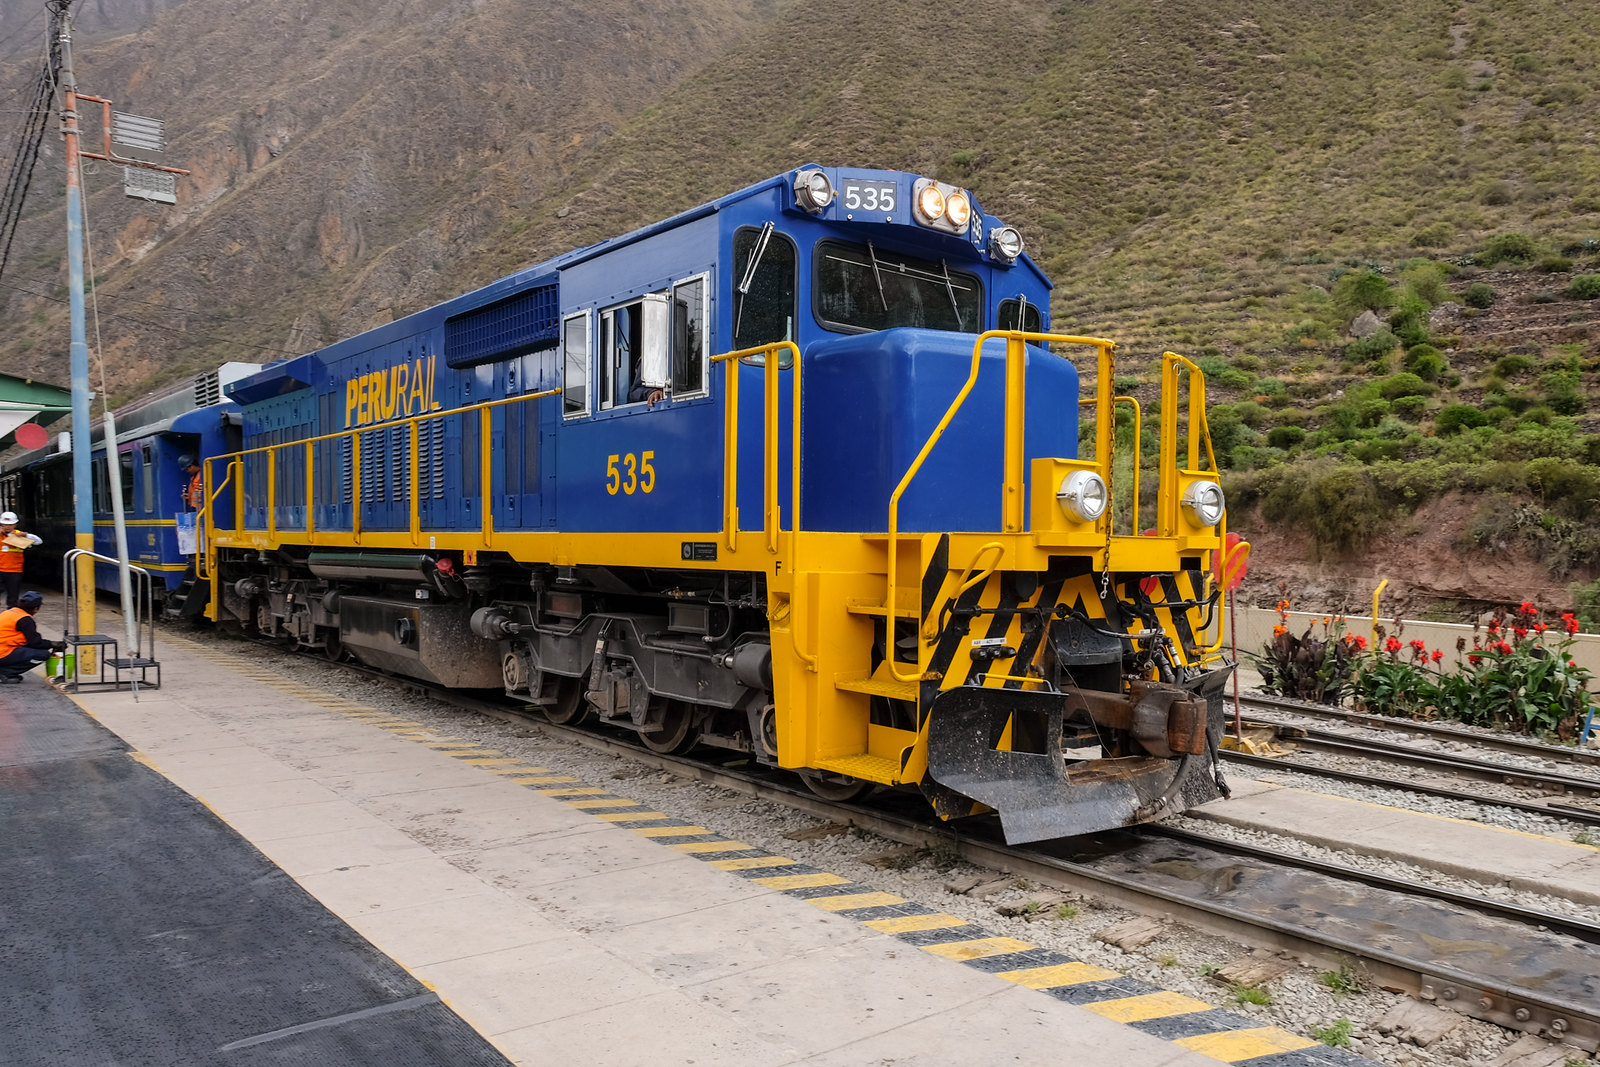 Peru Rail engine